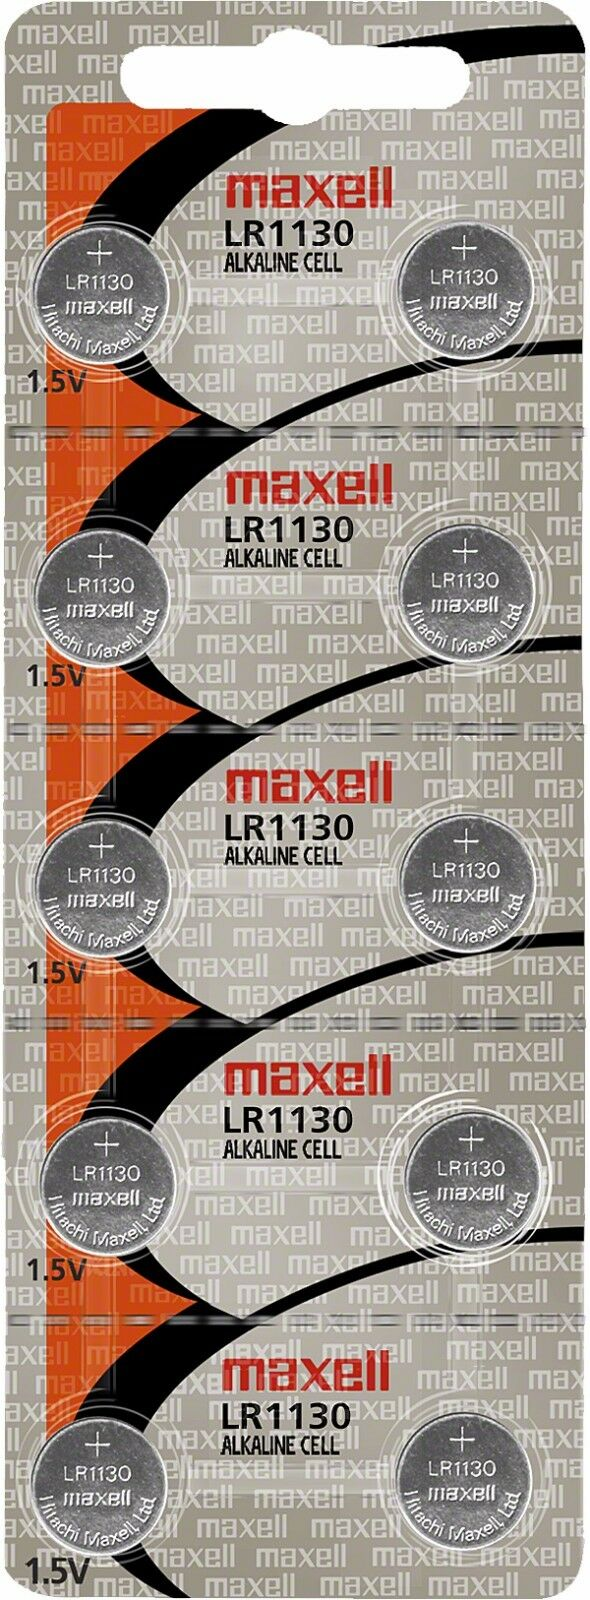 200pcs Maxell LR1130 1.5V Alkaline Cell Battery (Box Set)